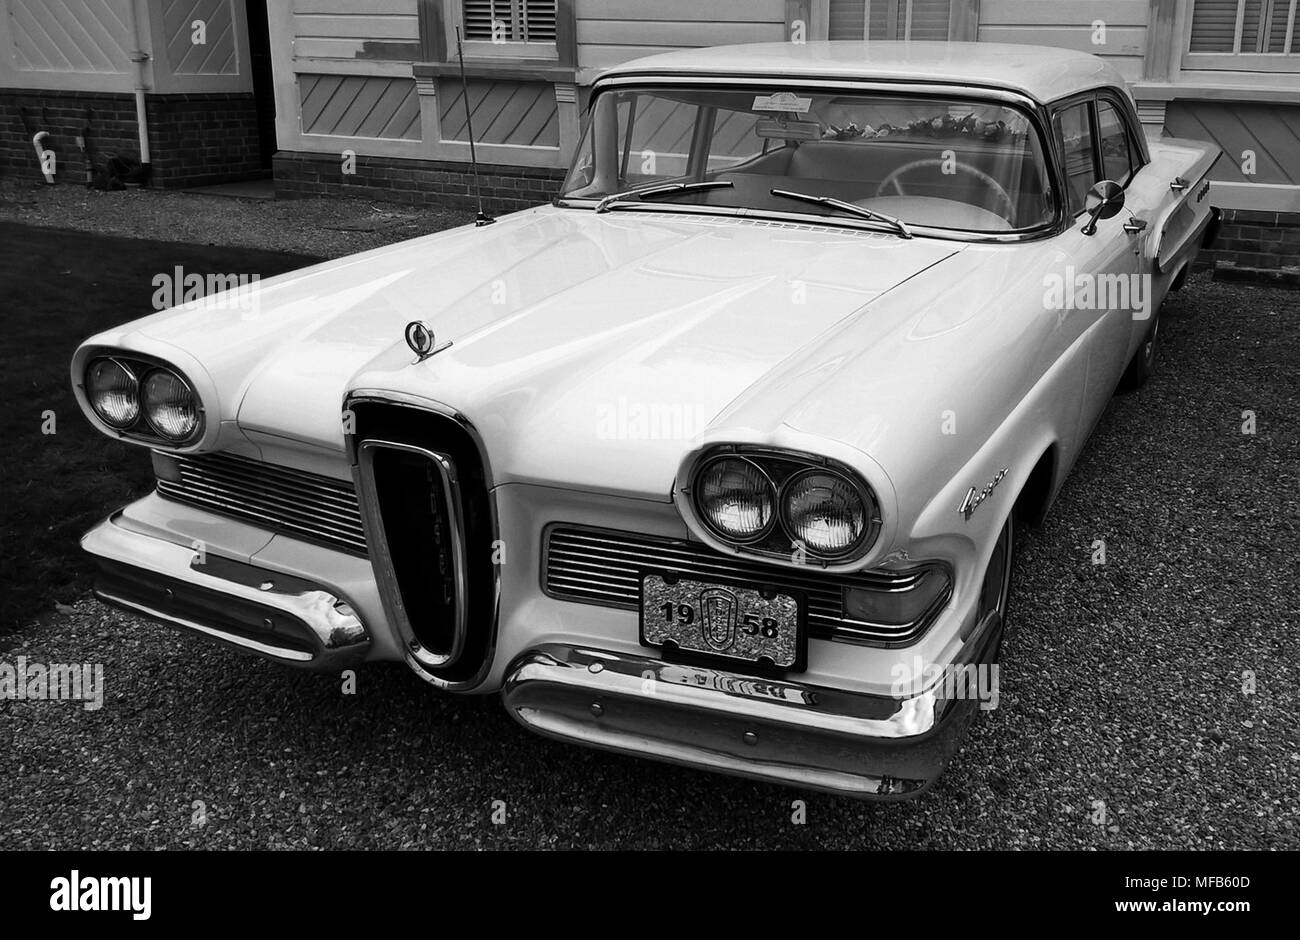 Ford Edsel - Stock Image